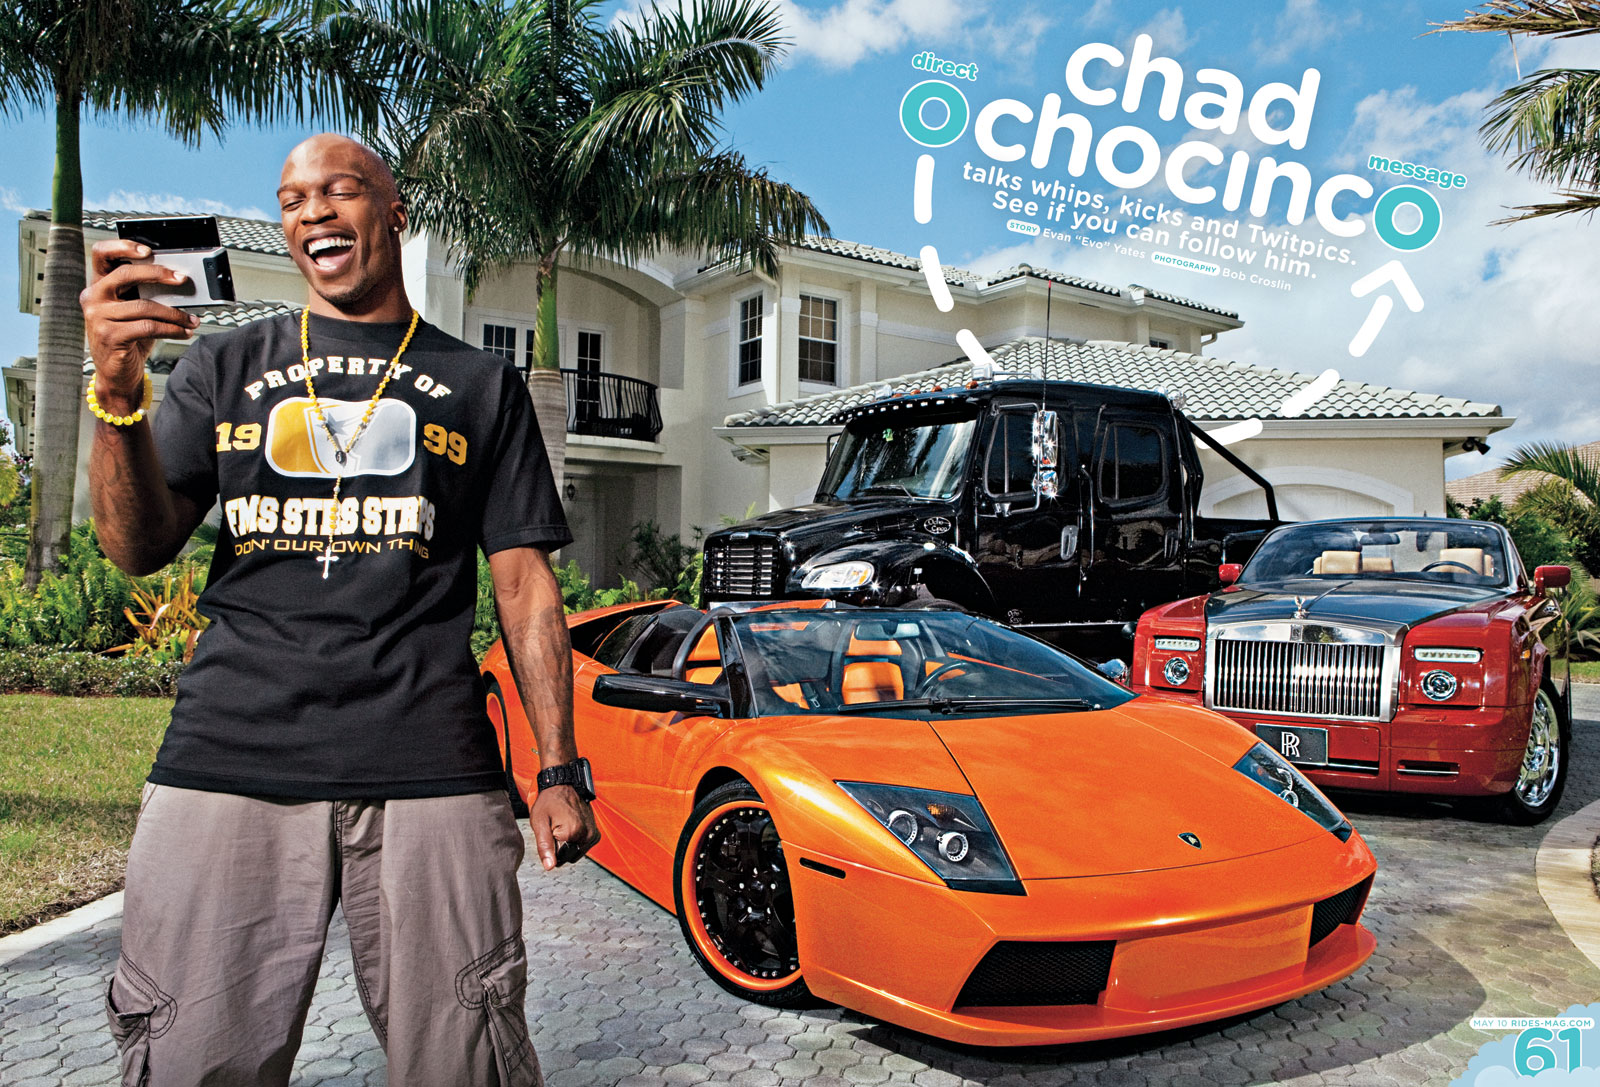 Chad Ochocinco Direct Message Rides Magazine